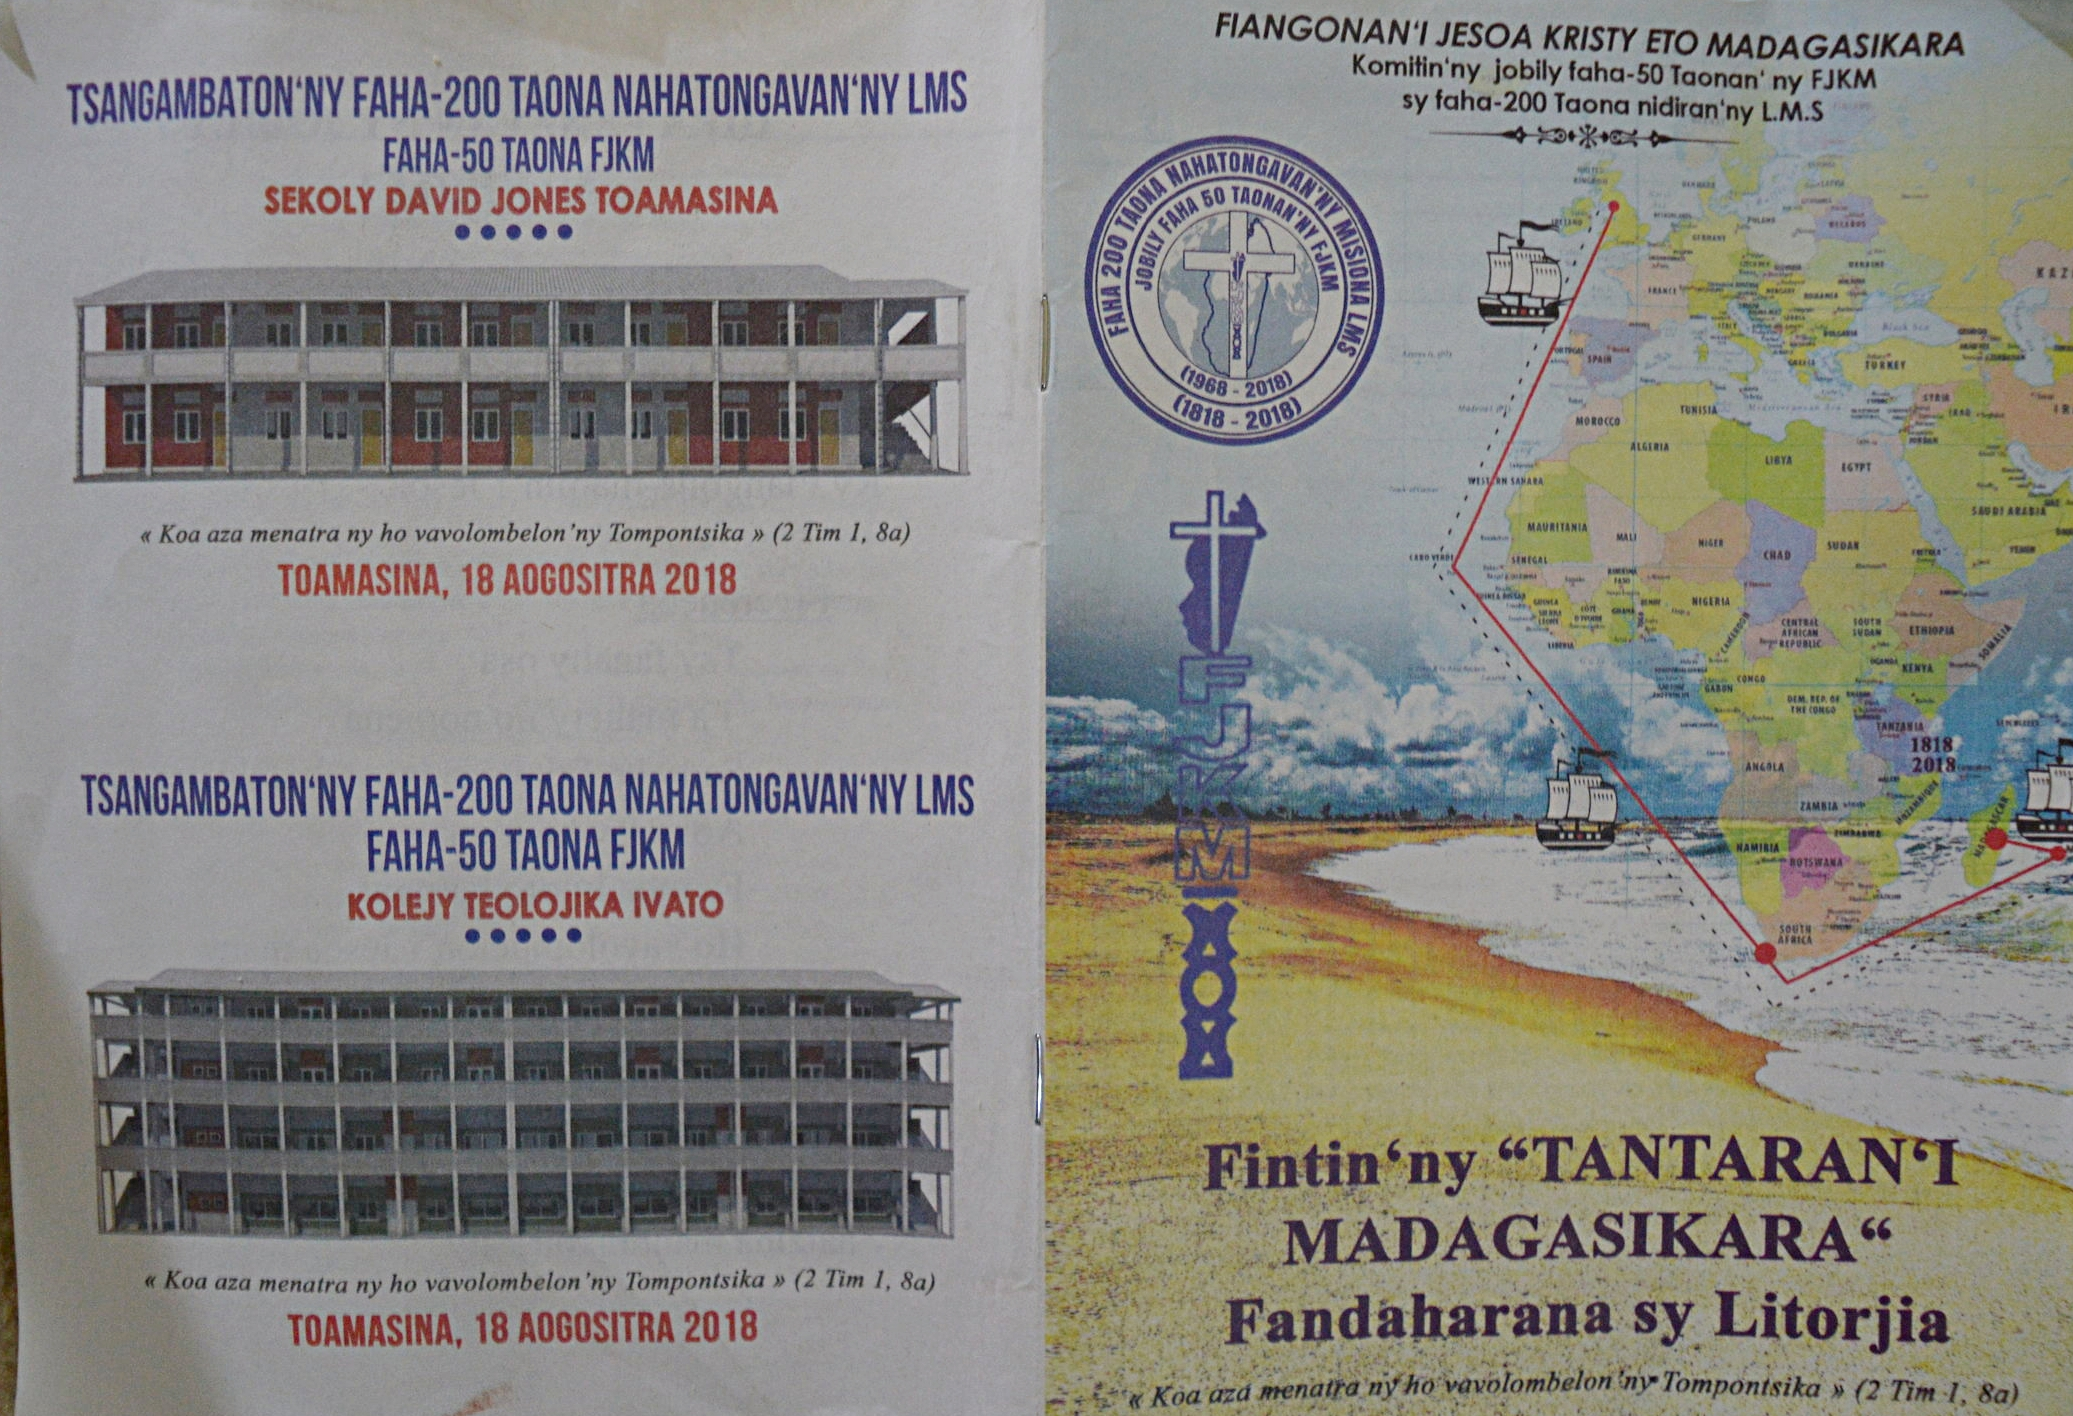 The worship bulletin for the celebration of the 50th anniversary of the FJKM and the 200th anniversary of the arrival of the first missionaries in Madagascar